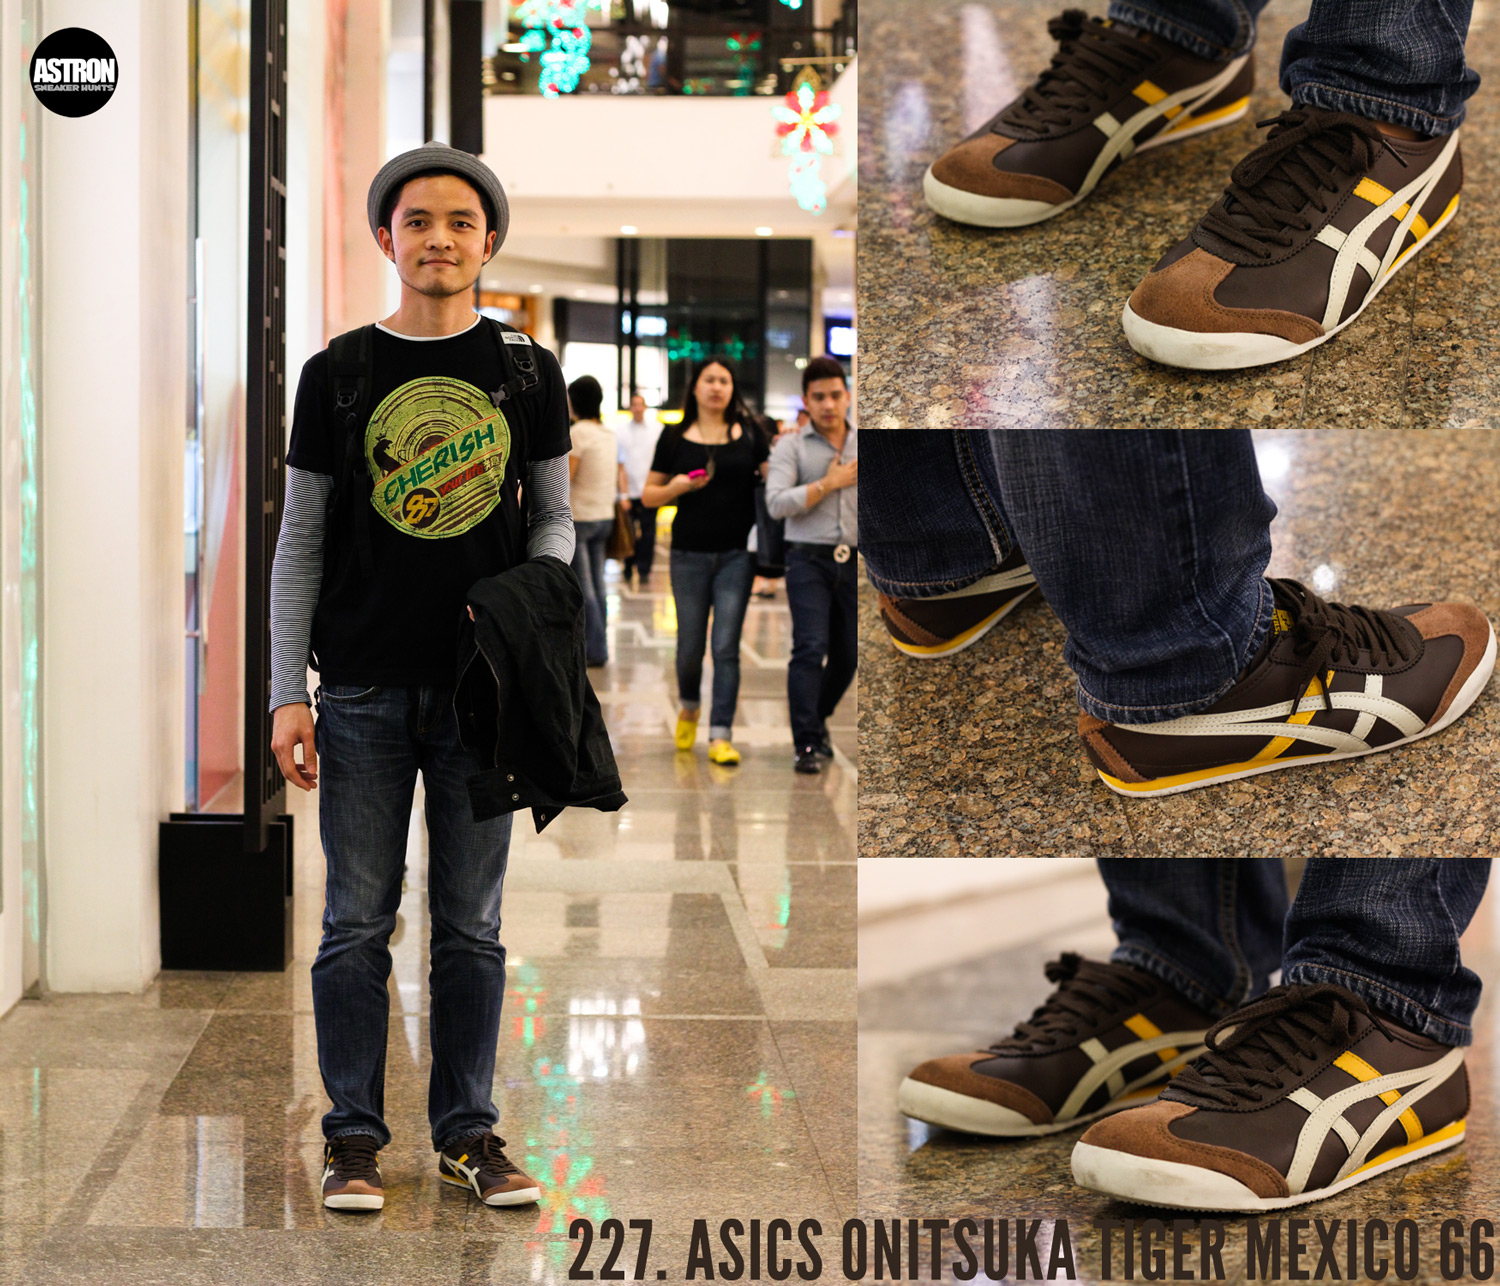 wearing asics onitsuka tiger